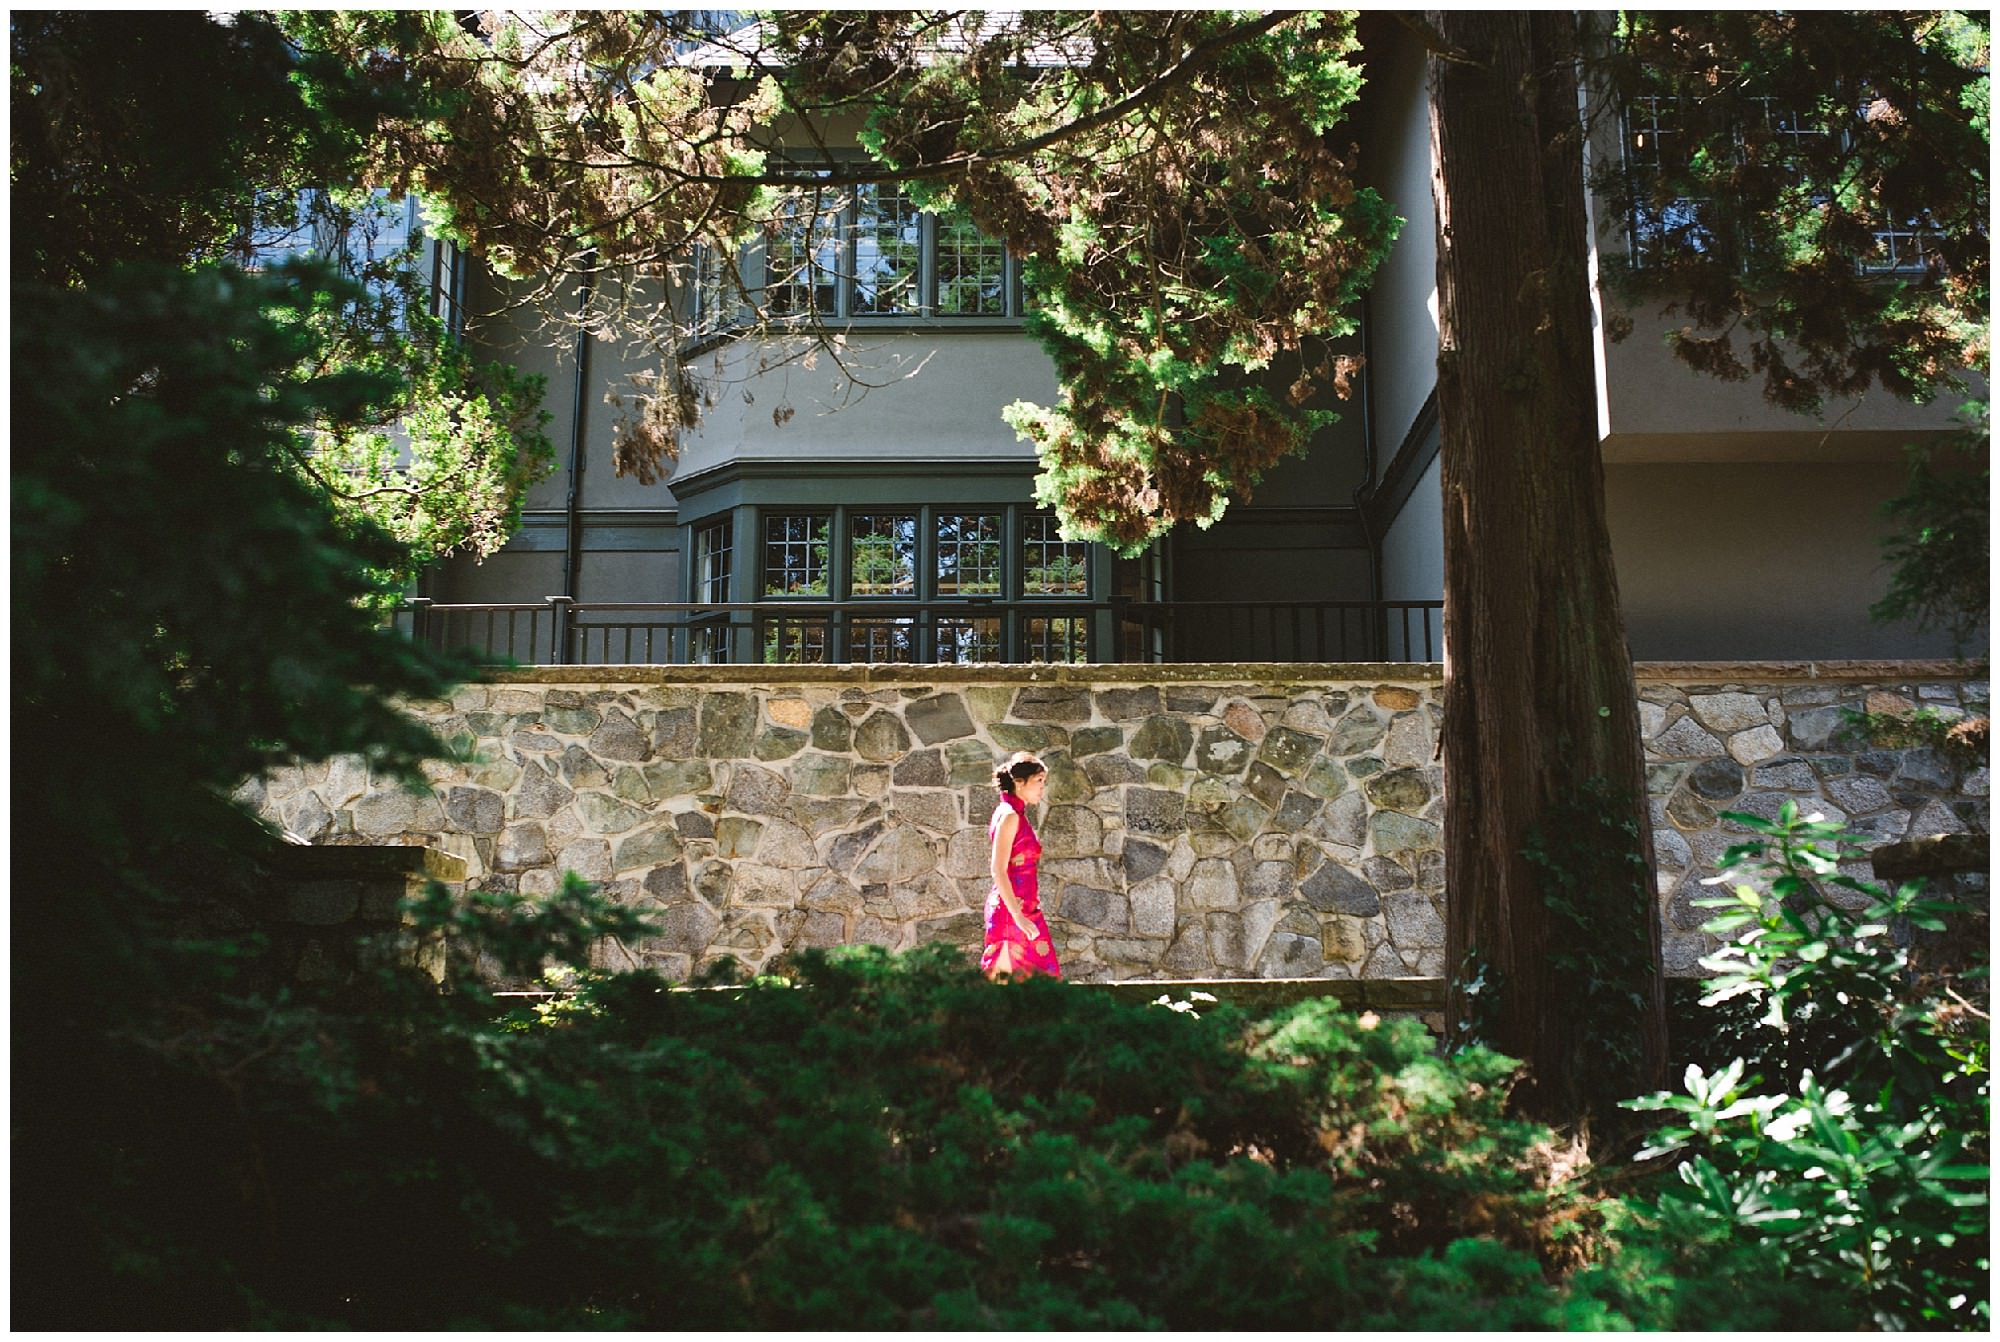 cecil green park house wedding vancouver bc